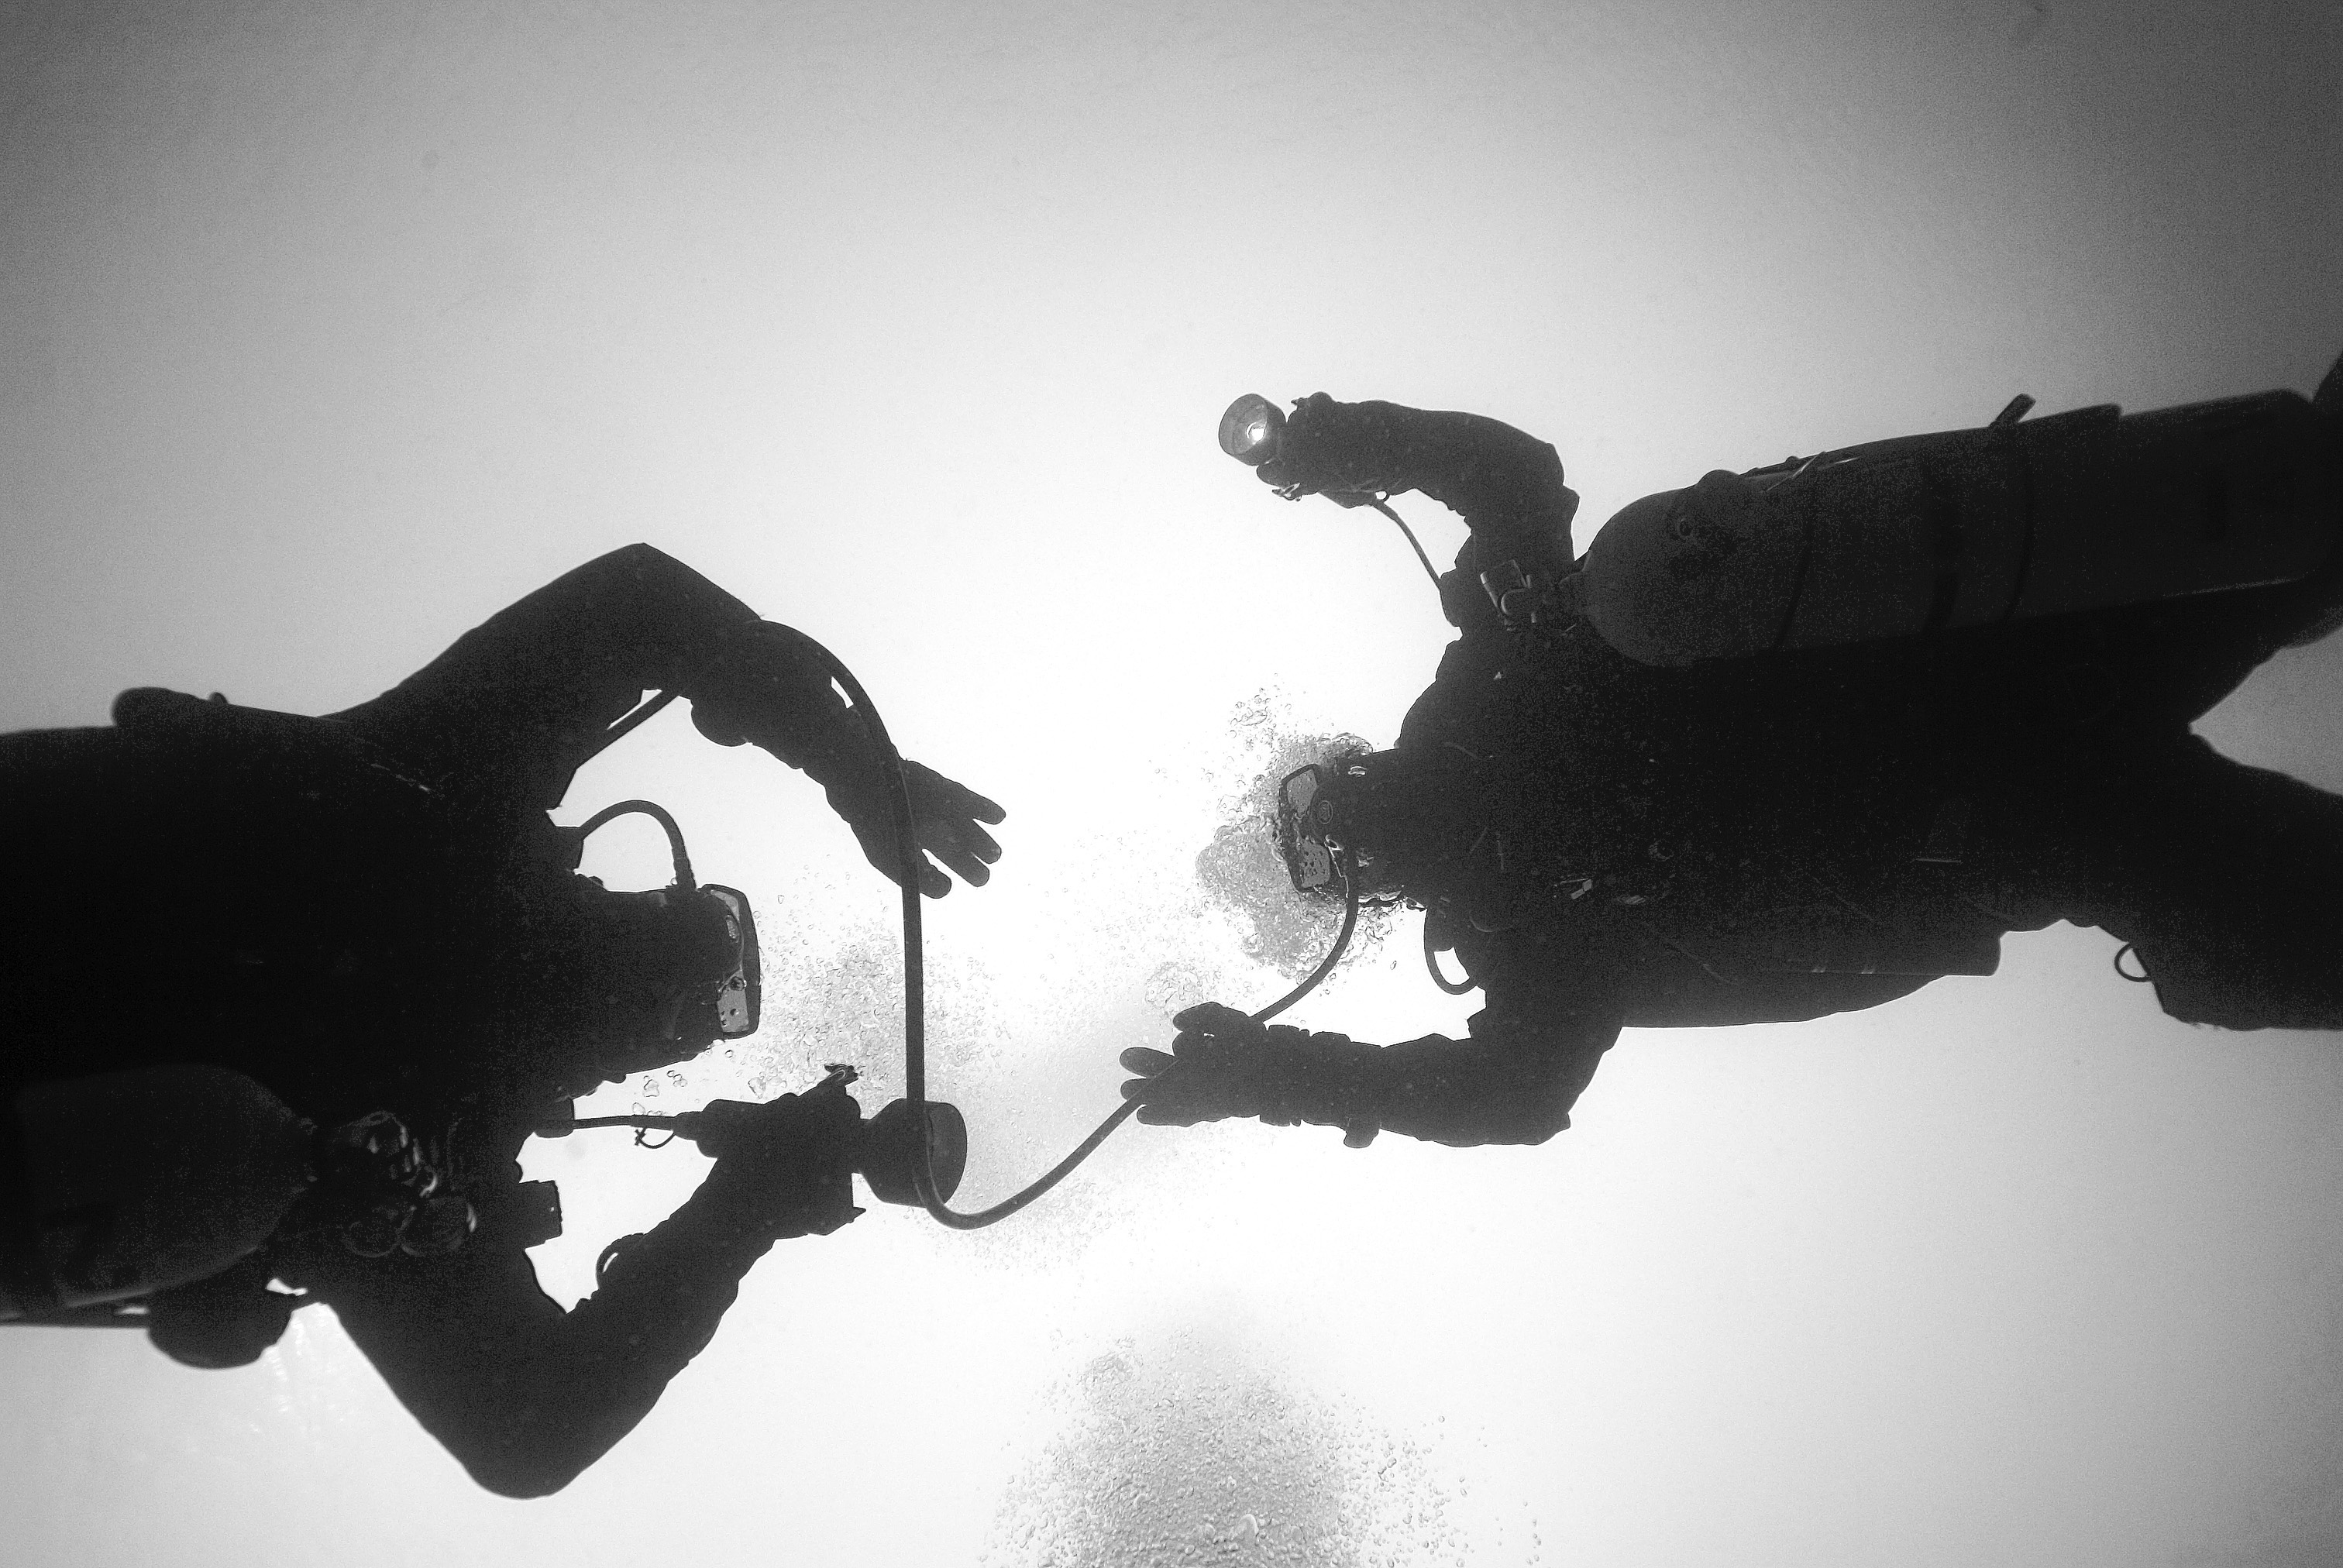 skills for technical diving x ray mag using a long hose makes the ascent and decompression stops much easier